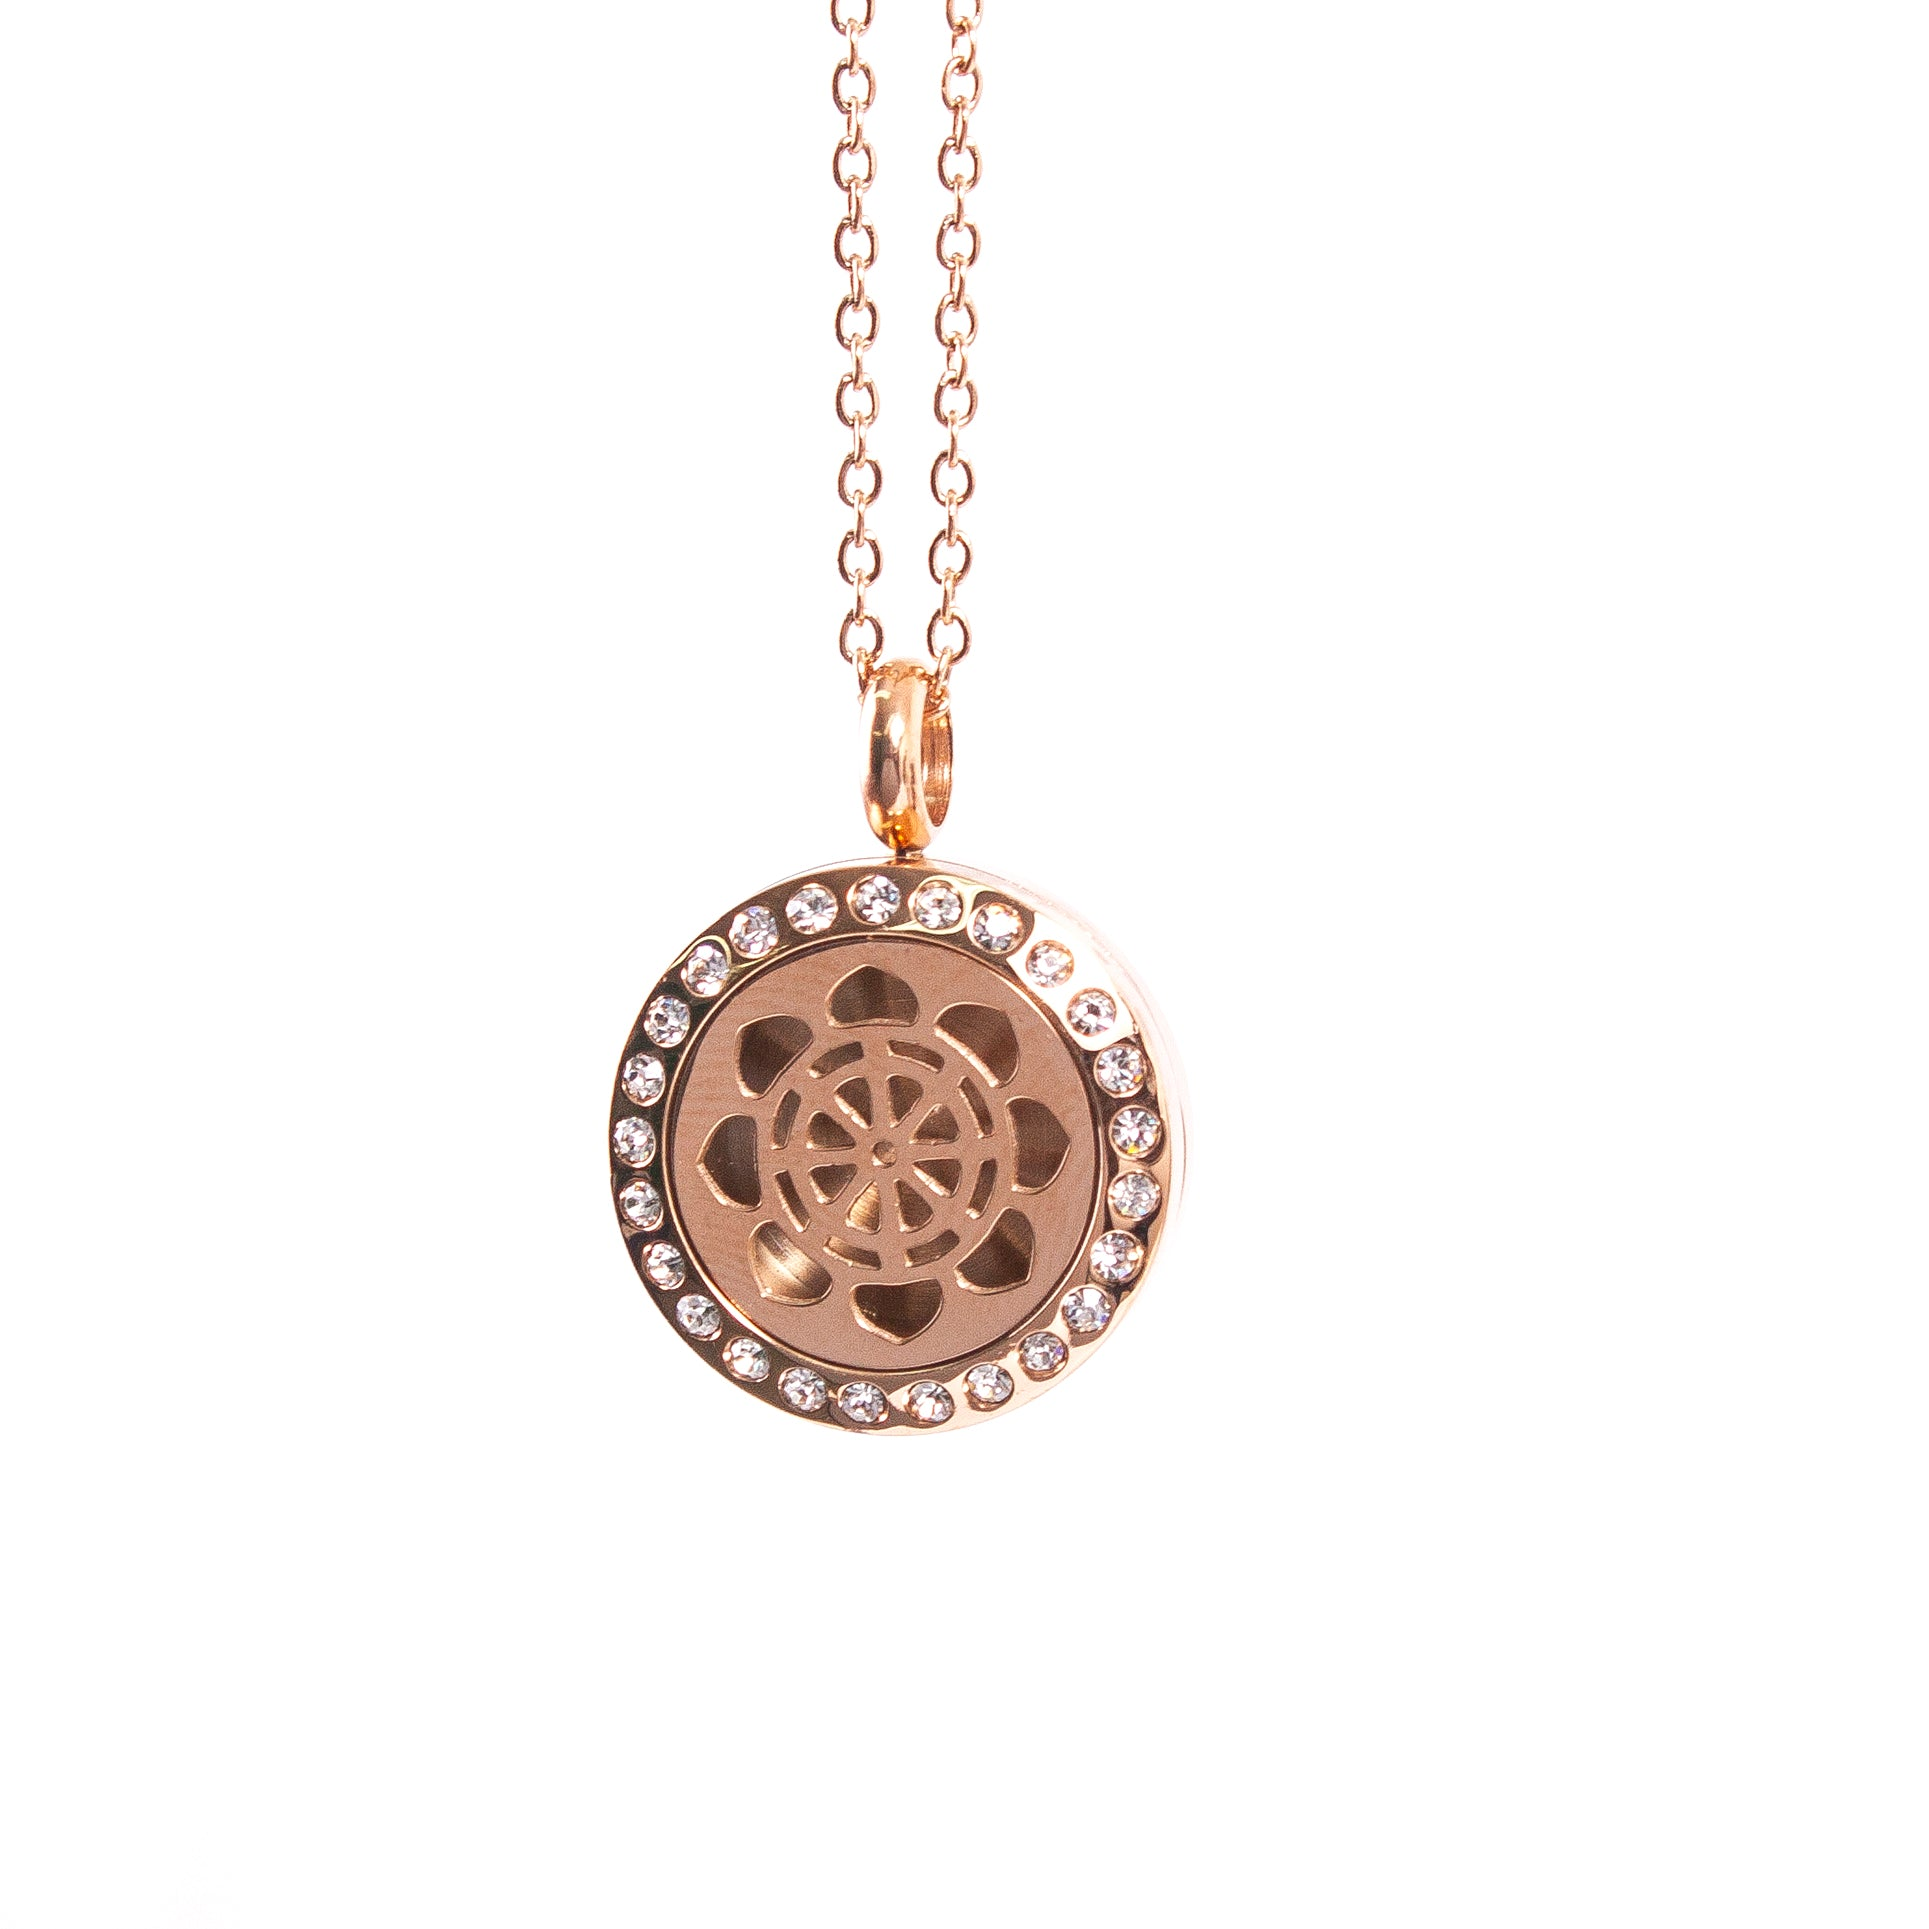 Dharma Wheel | Aromatherapy Oil Diffuser Necklace Locket with Pad